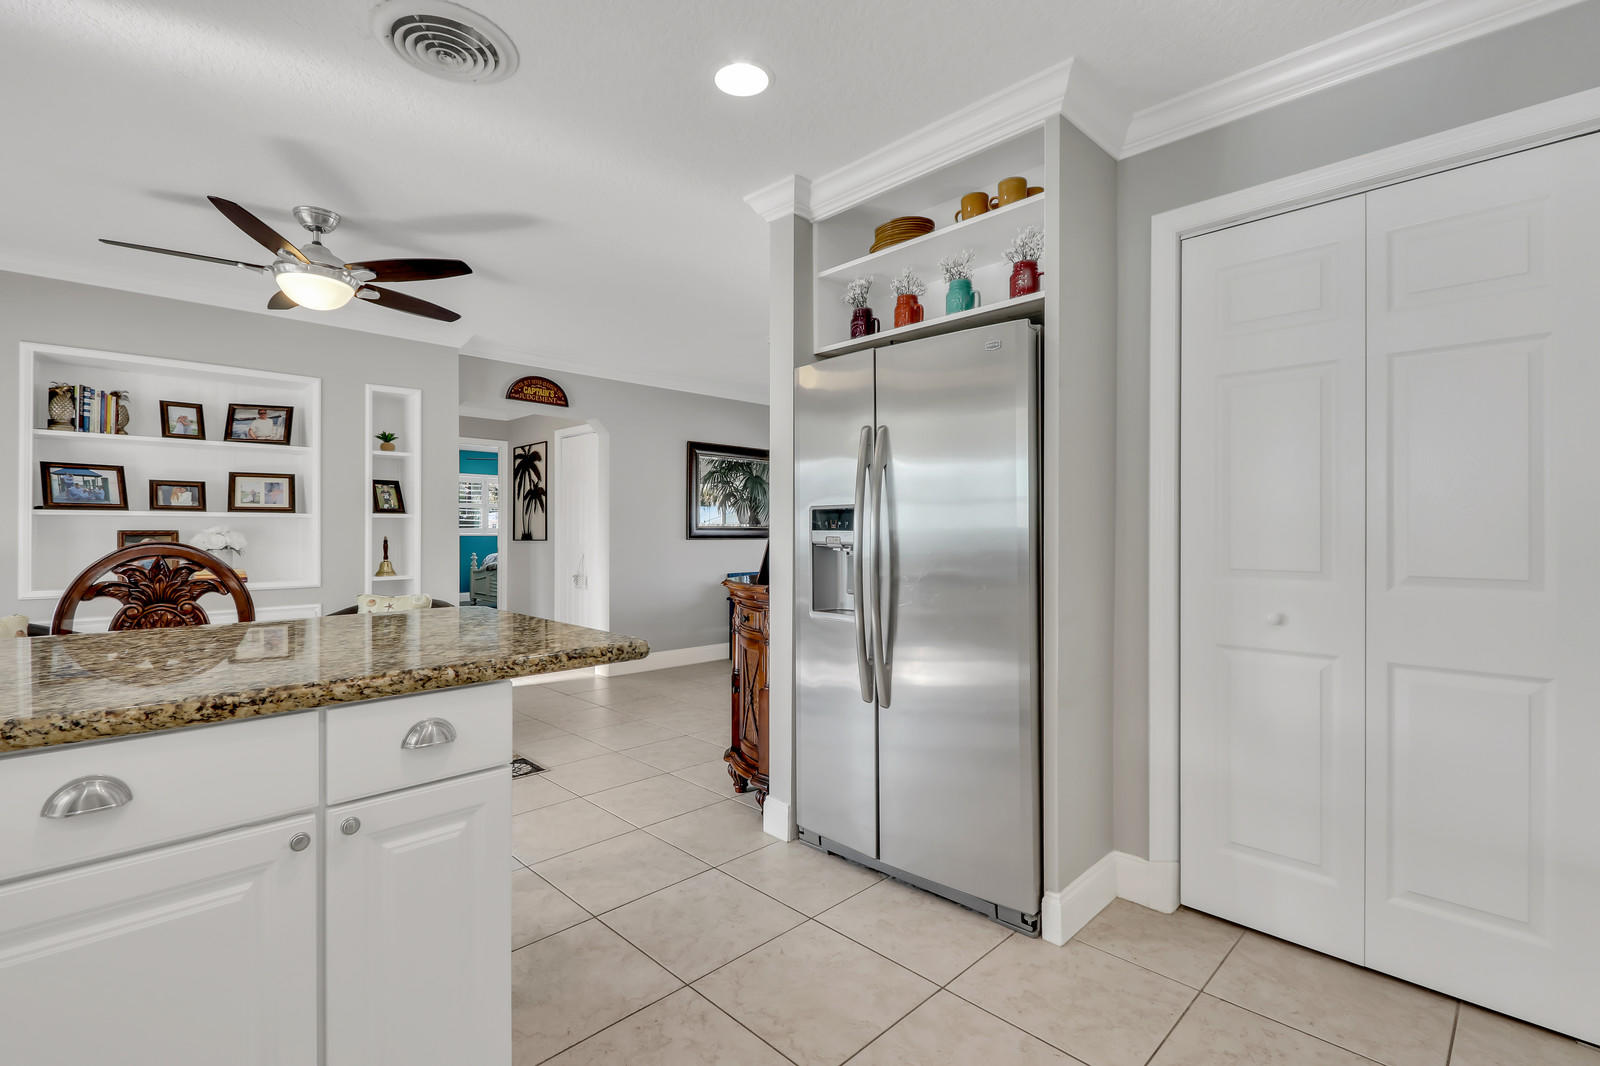 INDIAN RIVER GARDENS HOMES FOR SALE